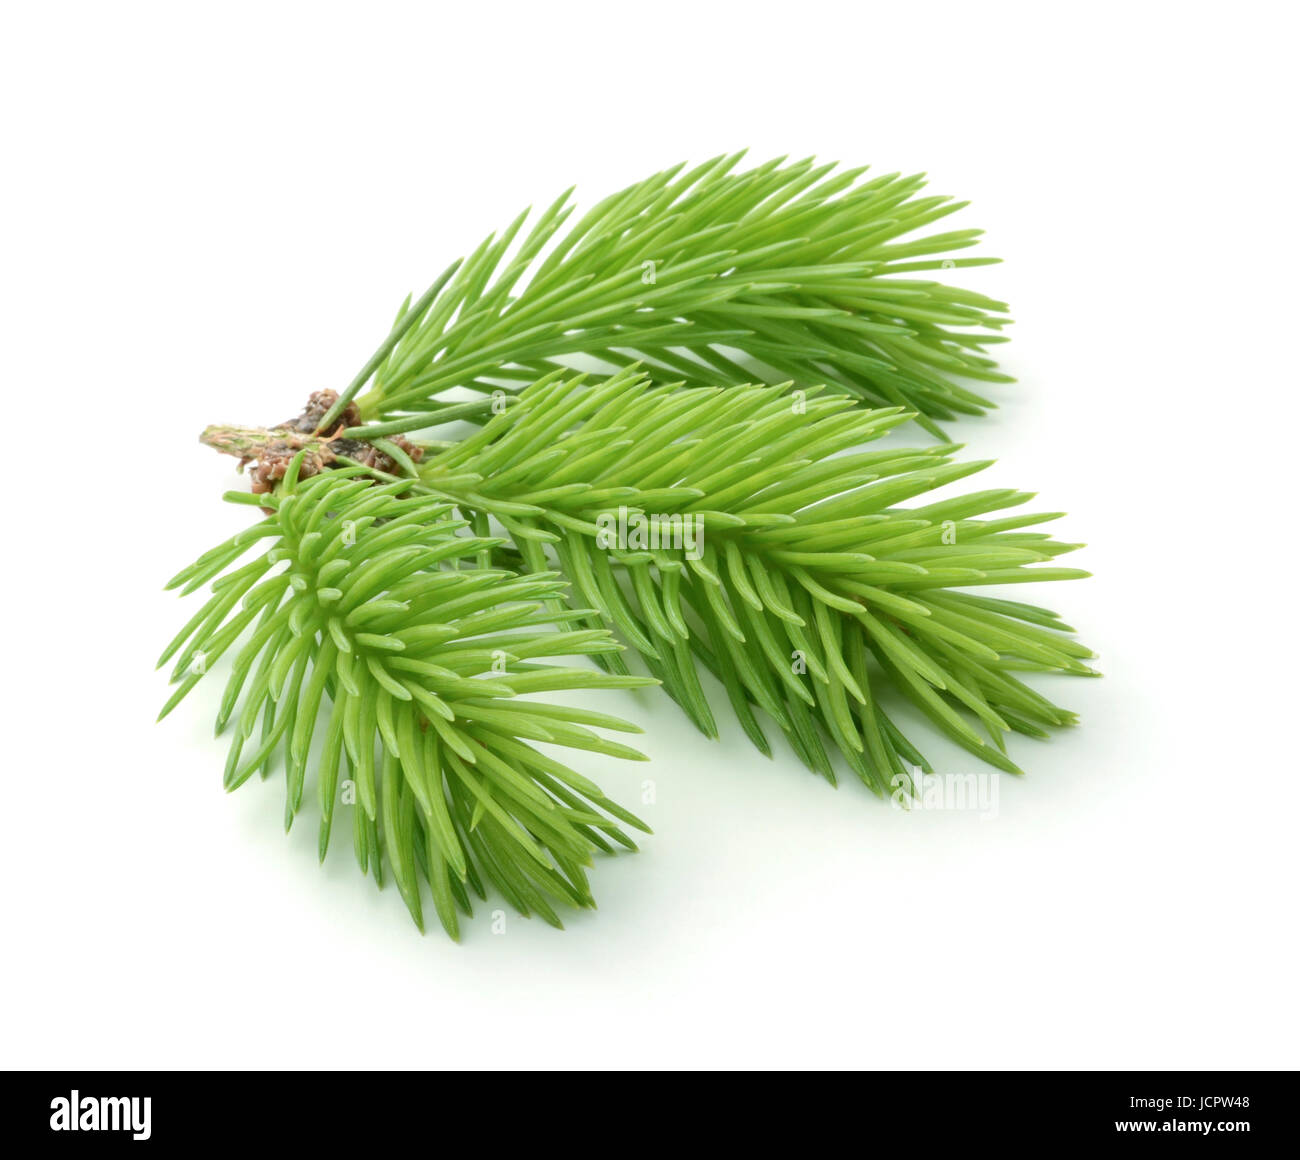 Young sprig of spruce isolated on white background - Stock Image